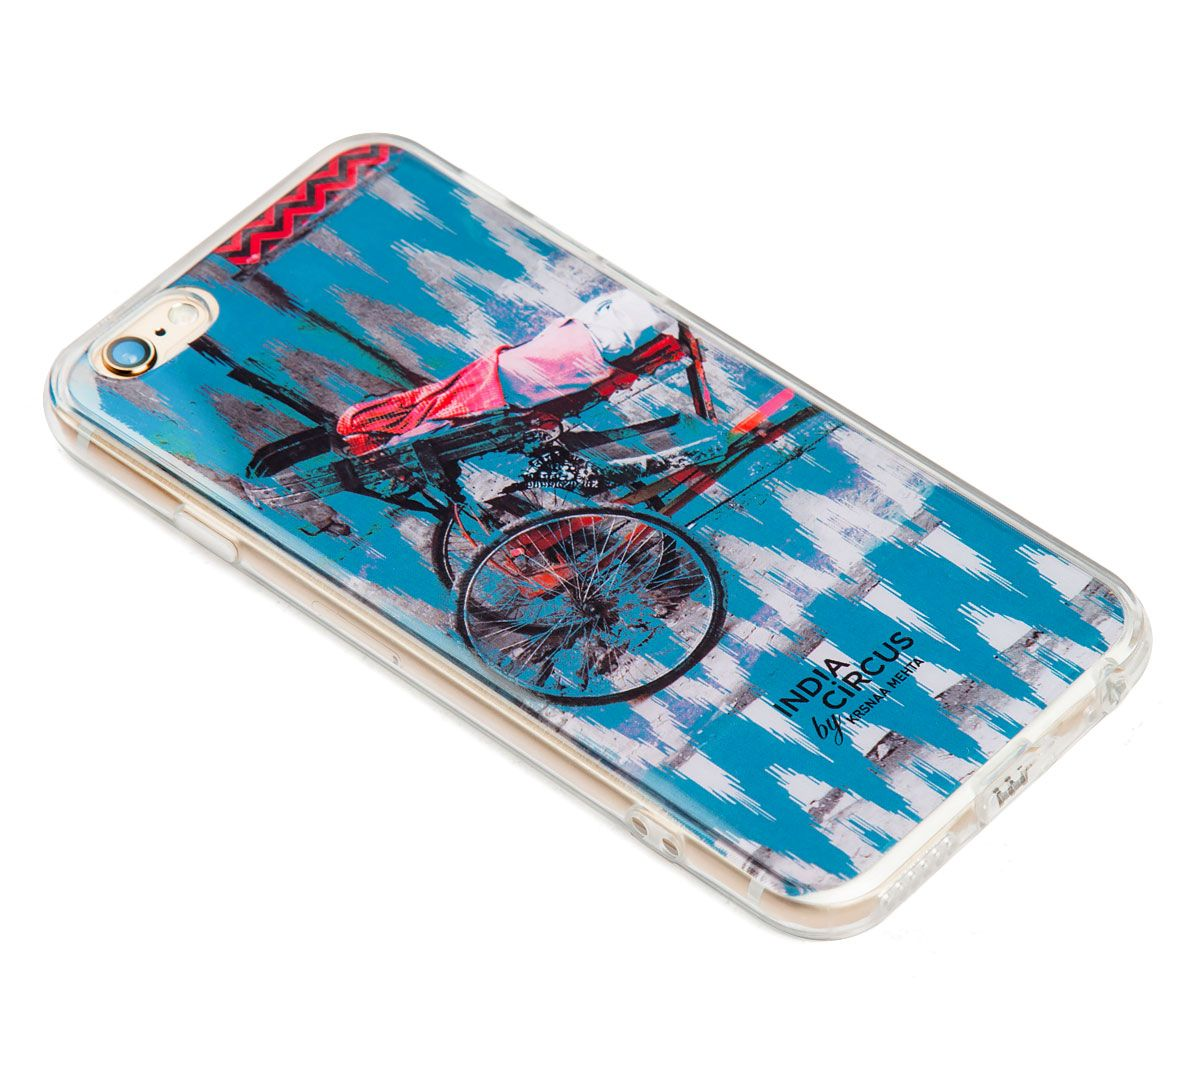 Shop Designer iPhone Covers Online